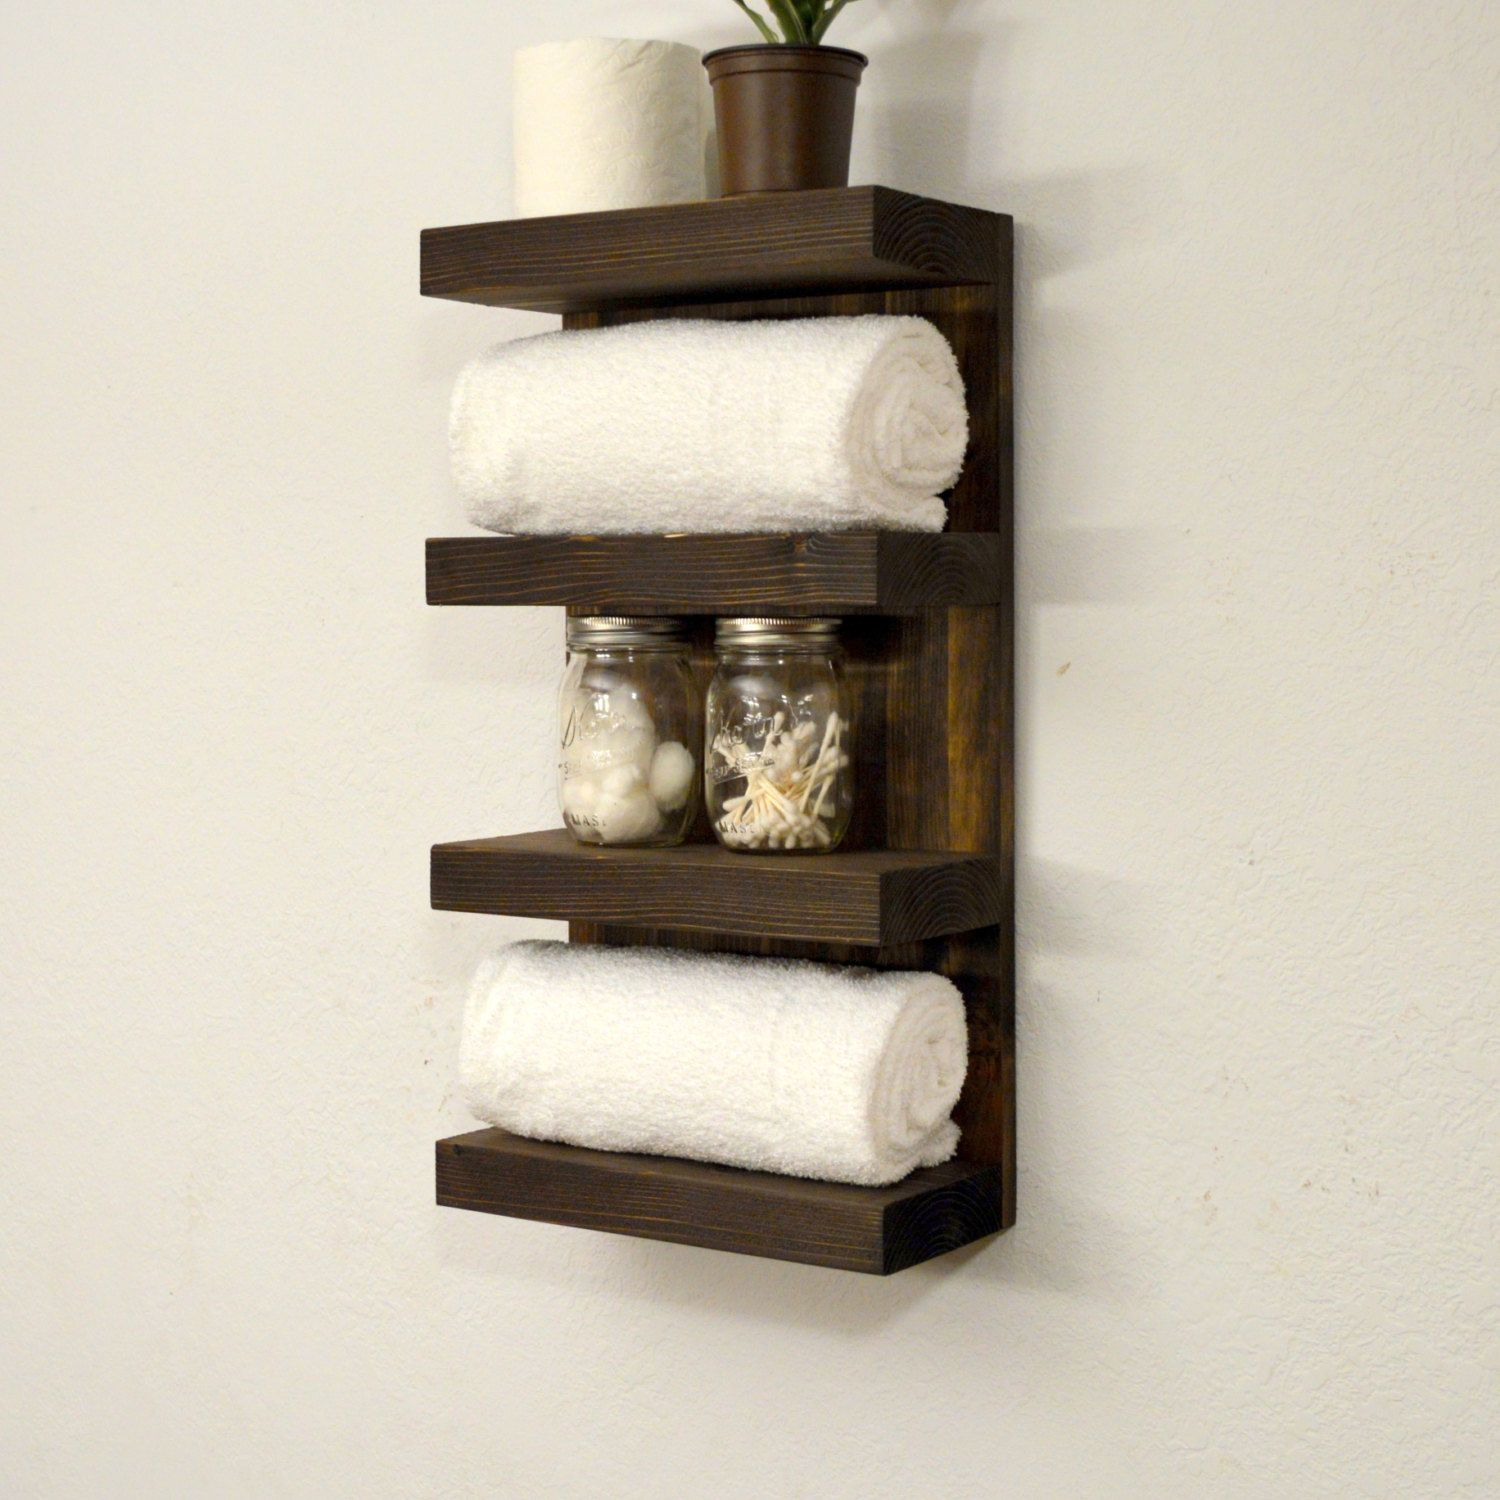 Four Tier Bathroom Shelf | Bathroom towels, Bathroom ladder shelf ...